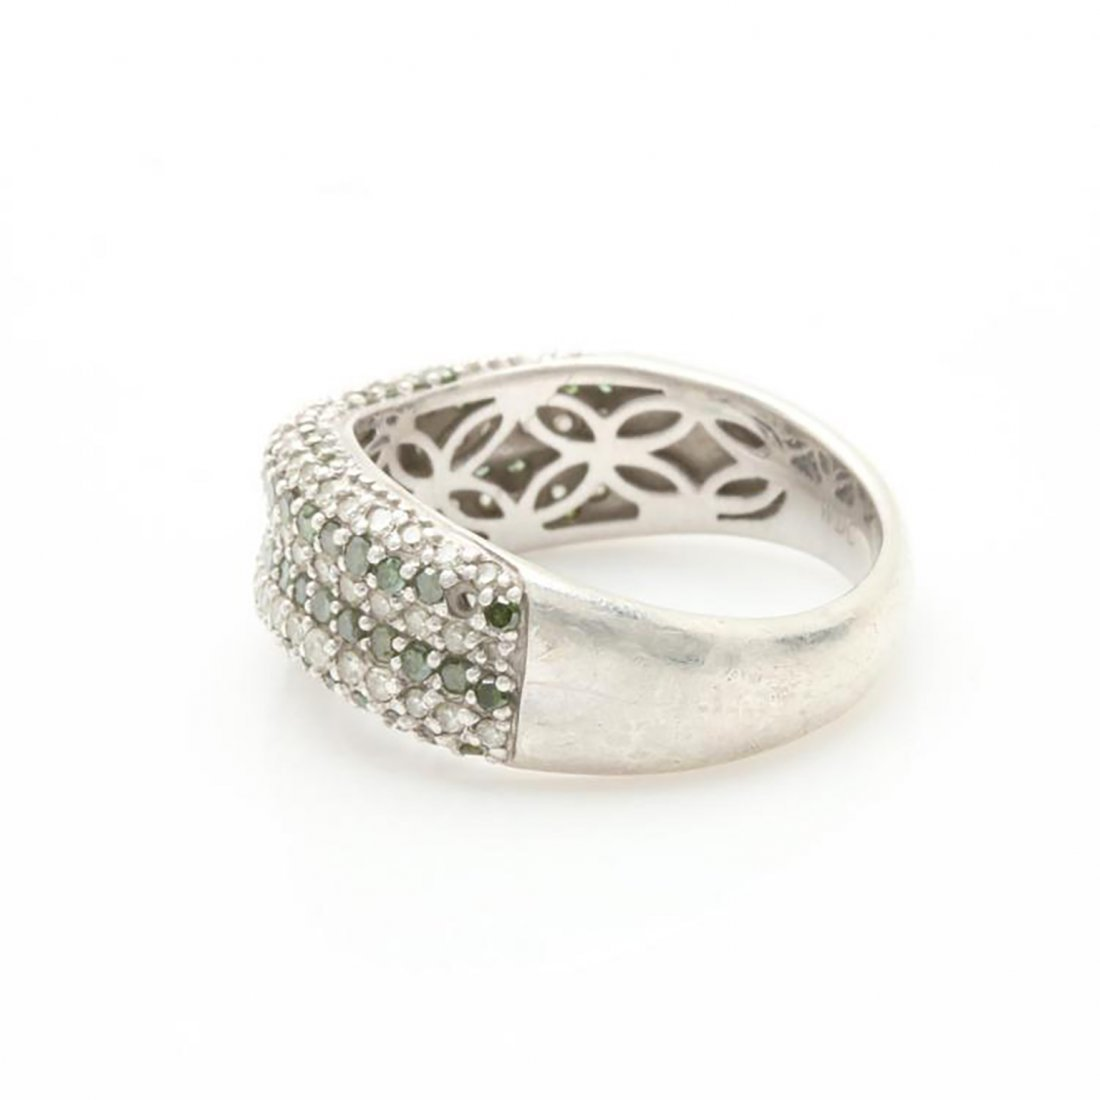 Green Diamond Ring with Accents in Sterling Silver - 5